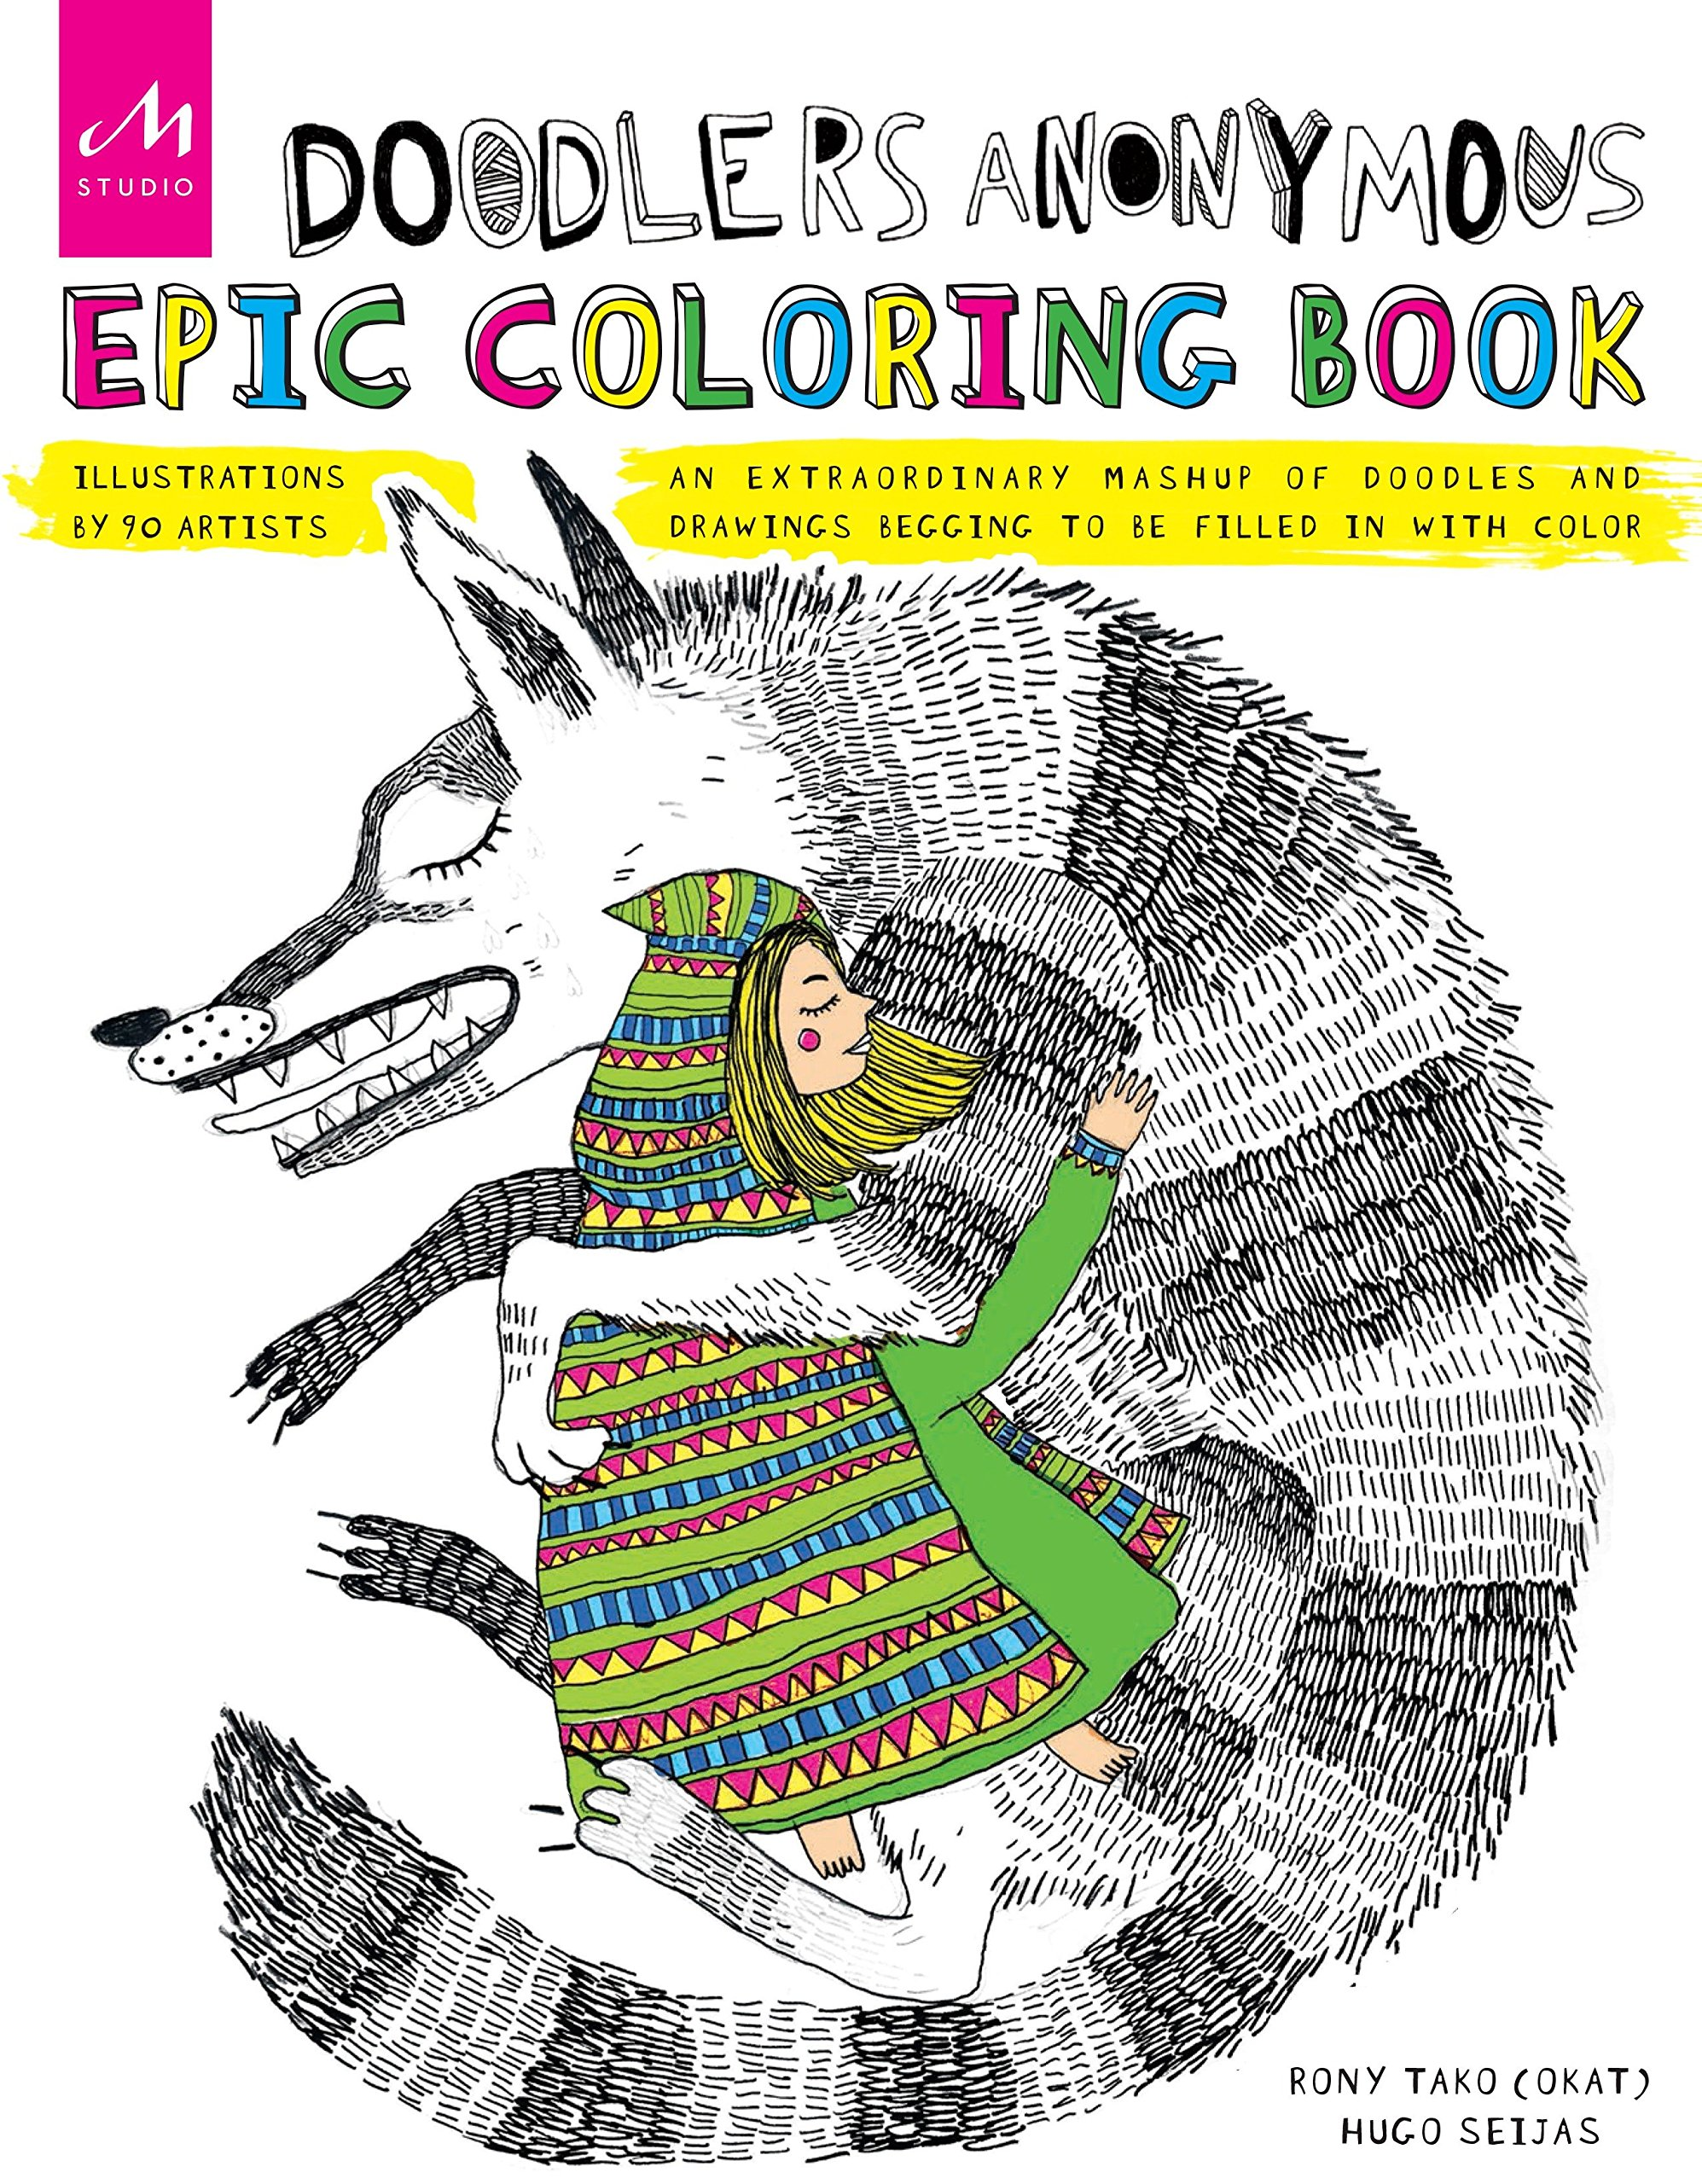 Doodlers Anonymous Epic Coloring Book: An Extraordinary Mashup of Doodles and Drawings Begging to be Filled in with Color by Monacelli Studio